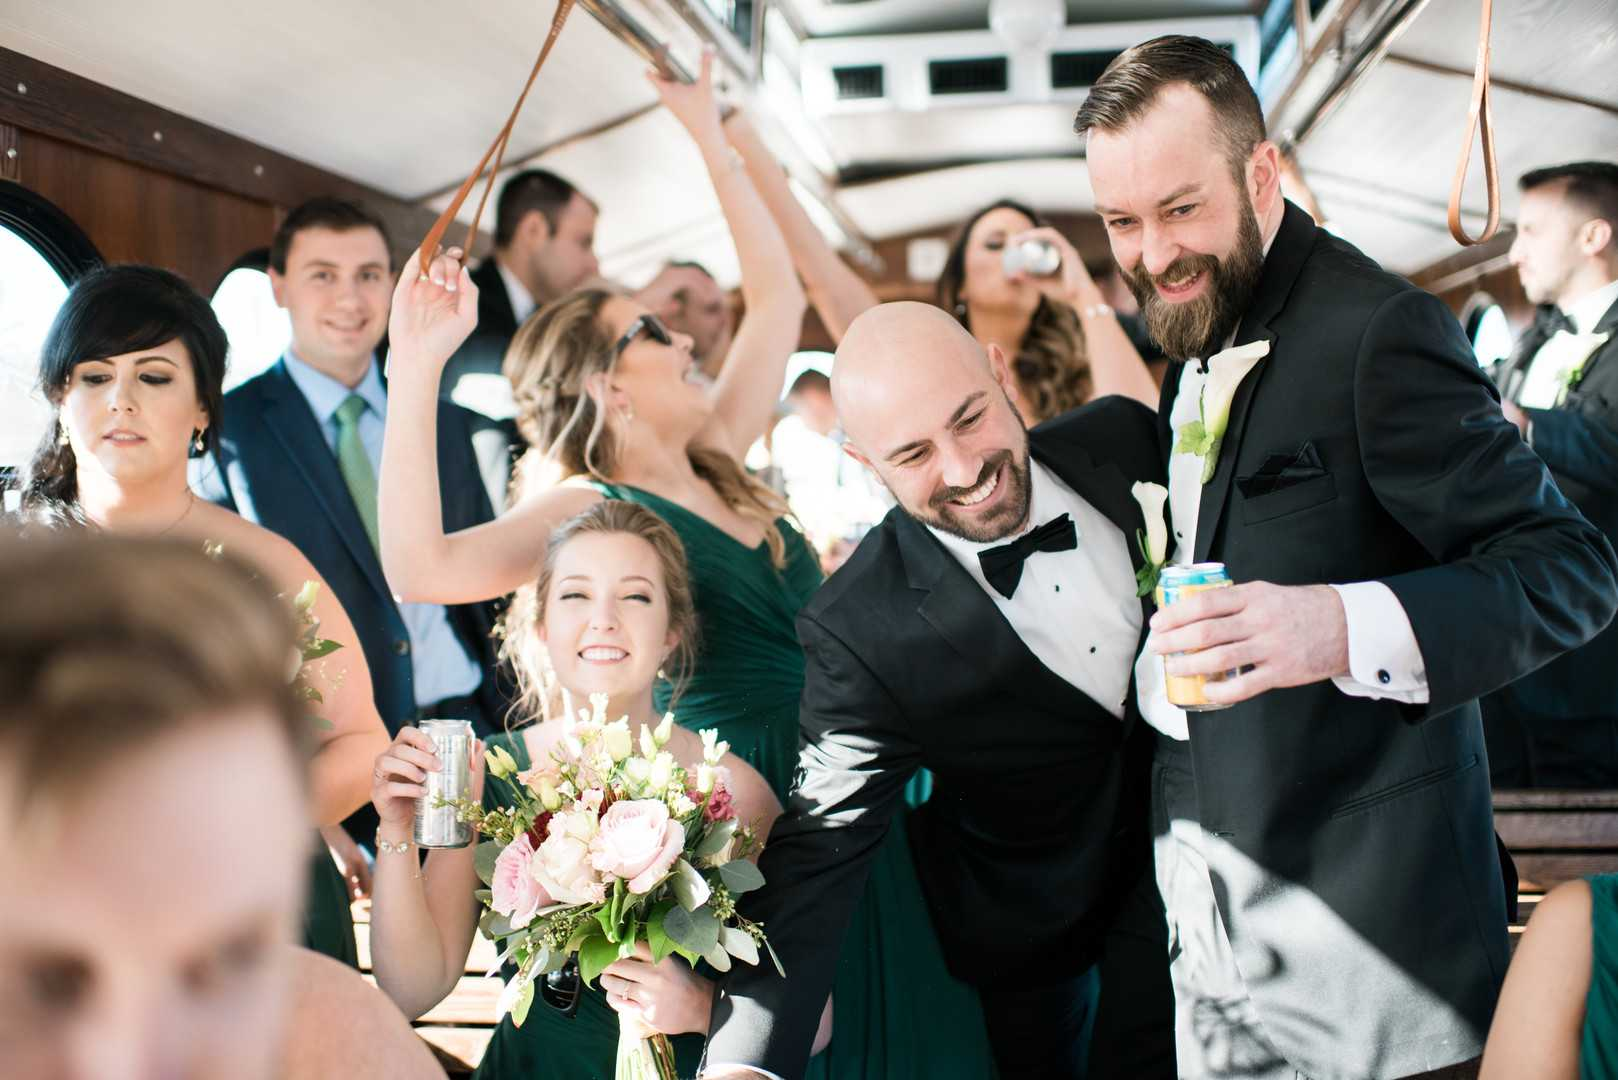 Bridal Party | A Stunning St. Patrick's Day Wedding | Kate Aspen